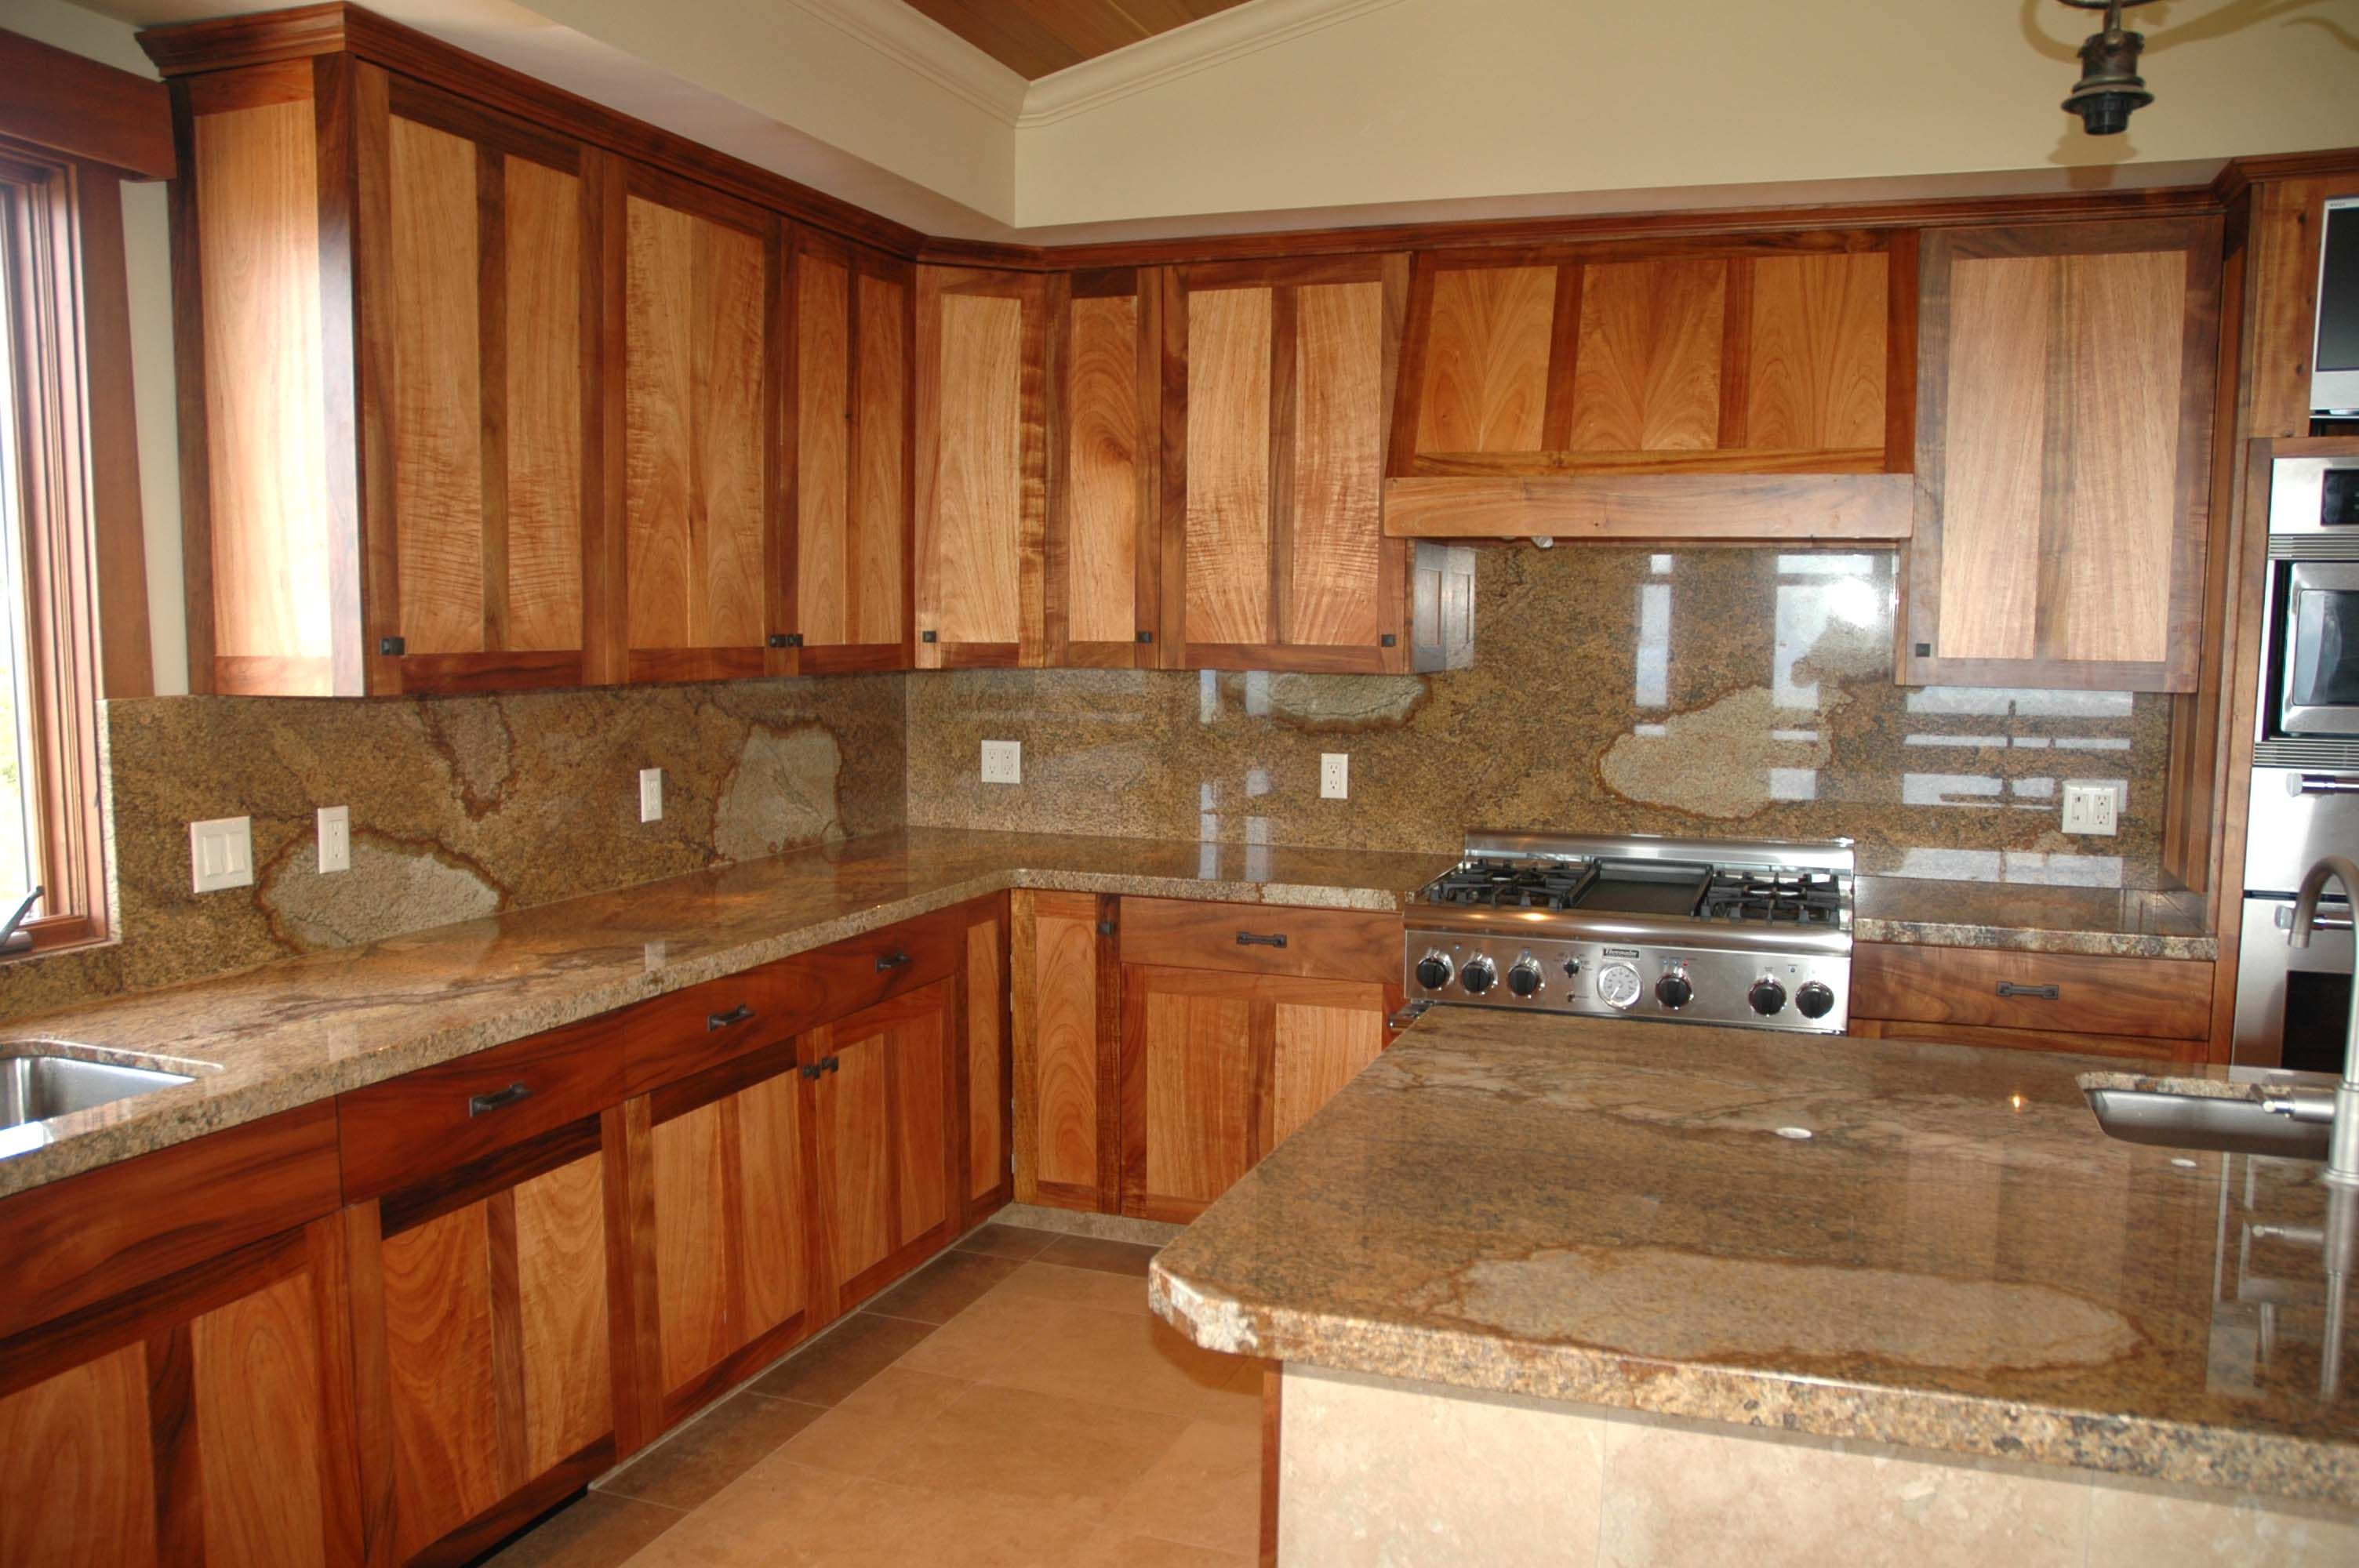 Custom Cabinets | Custom Koa Kitchen In Kula, Maui, Hawaii